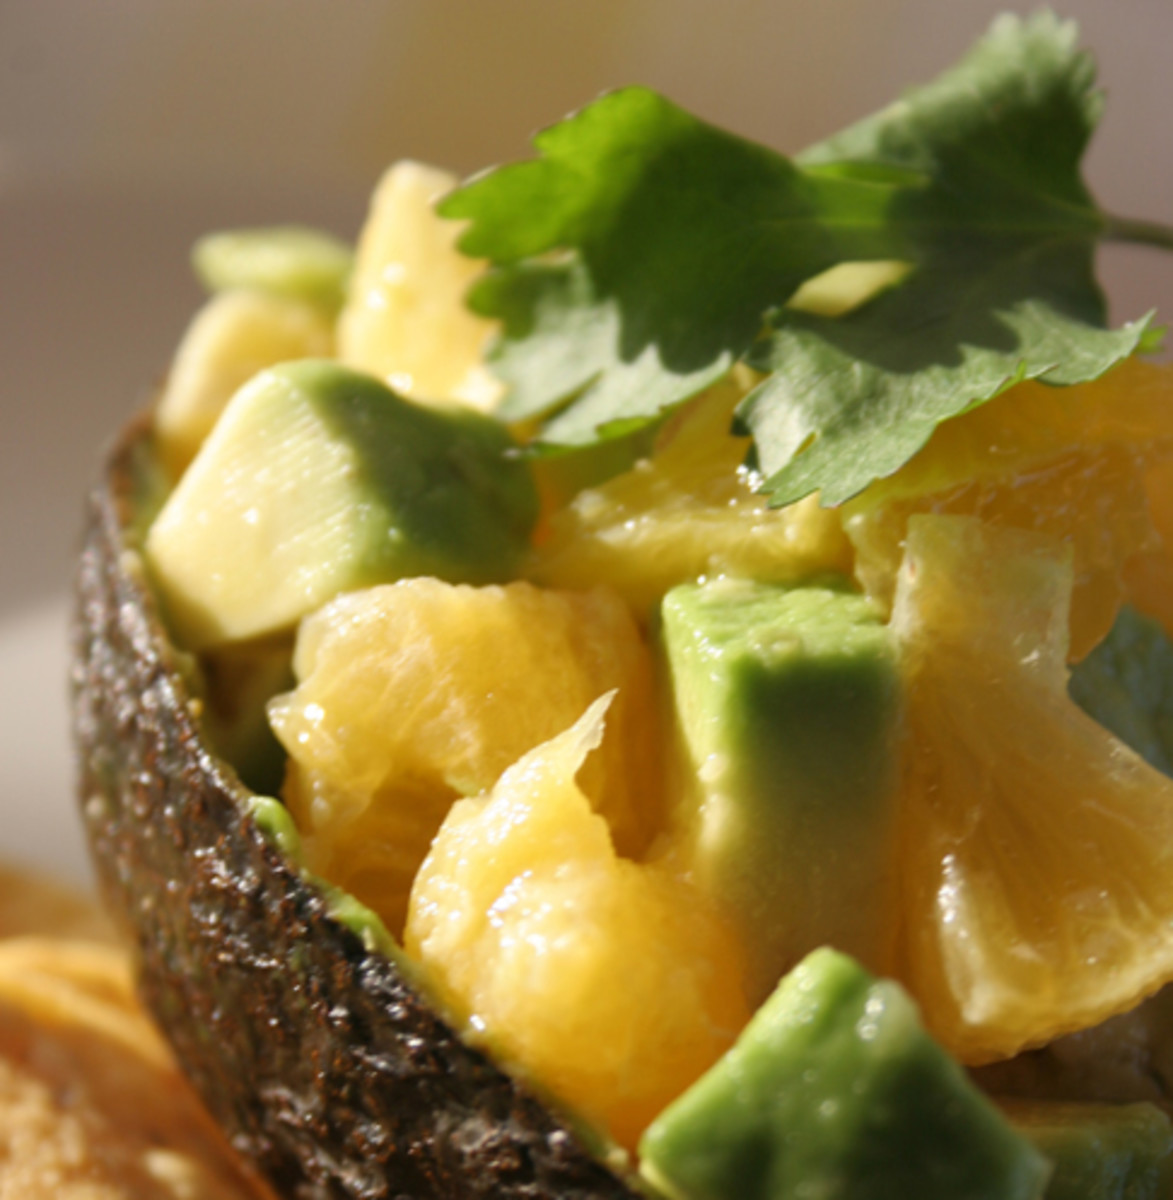 Exotic Mexican Avocado and Tangerine Salad